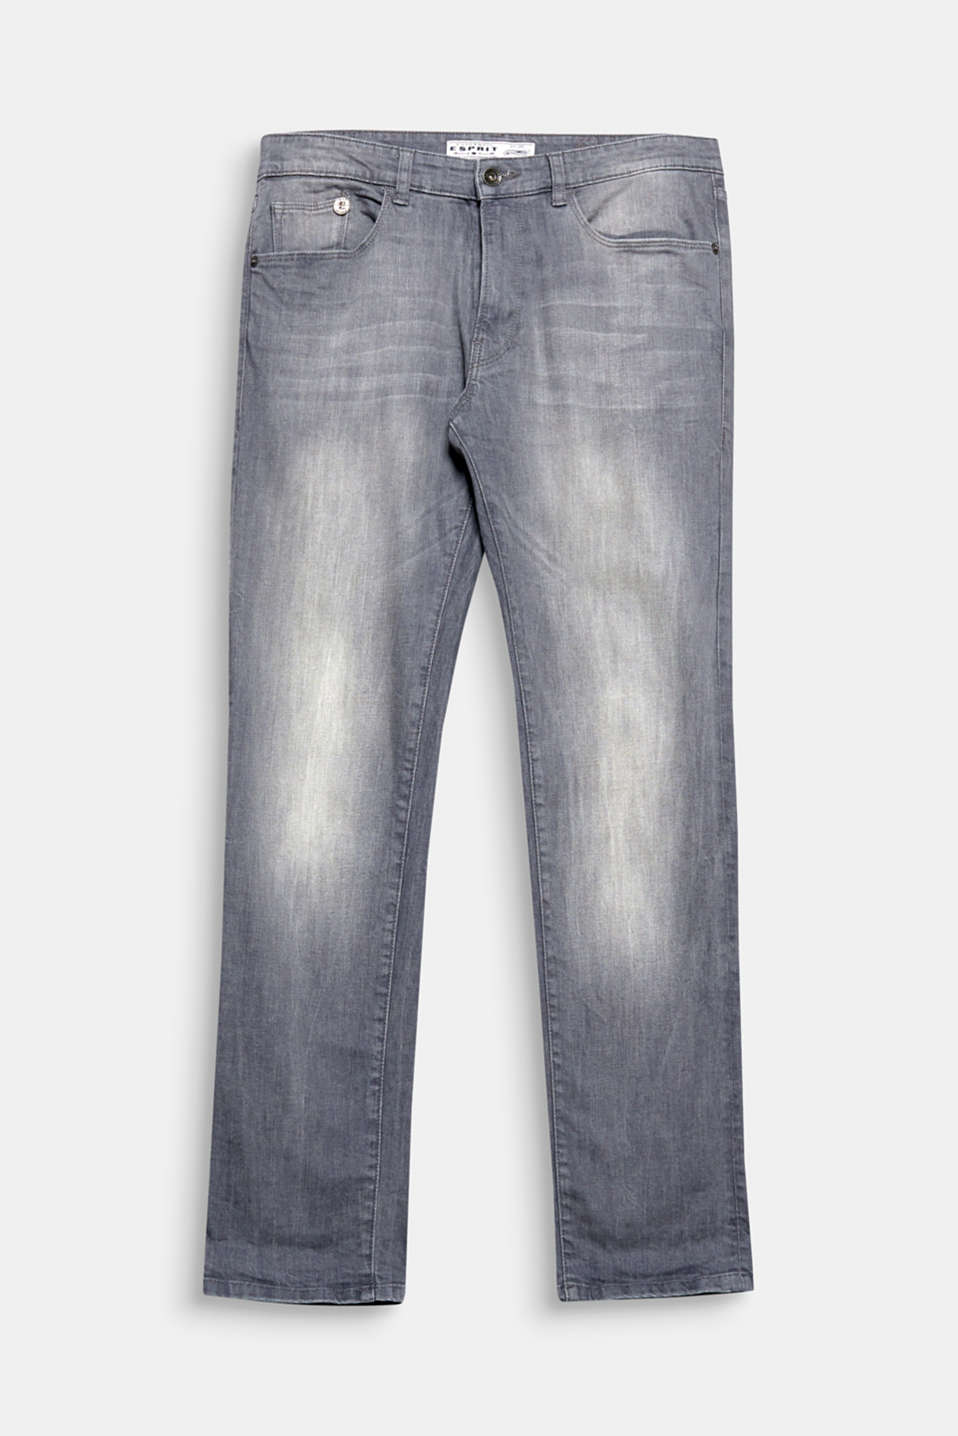 Grey stretch jeans with subtle vintage effects, a soft finish and a zip fly